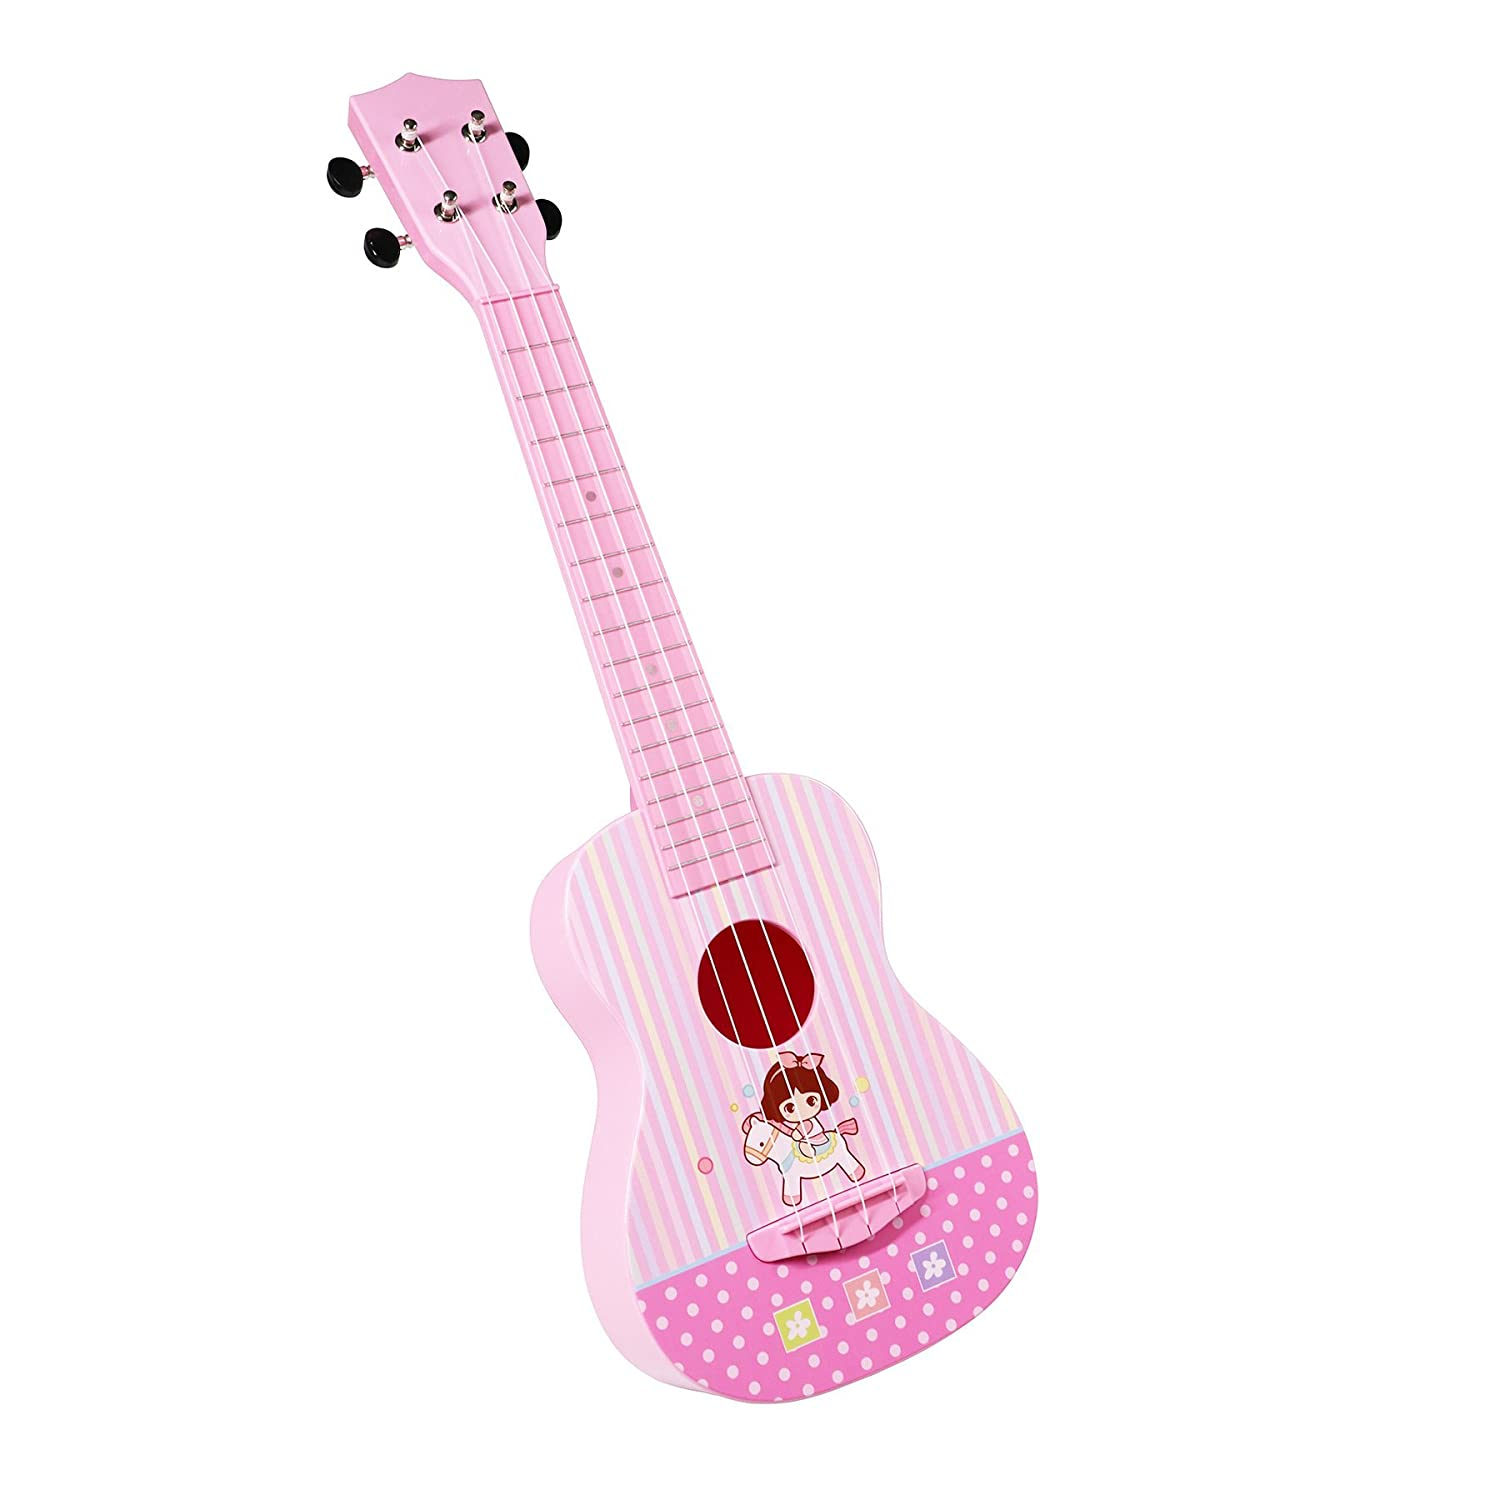 aPerfectLife Ukulele Guitar for Kids, 23 Inch Nylon-String Starter Classical Guitar for Beginner Children (Wooden) AG-0144